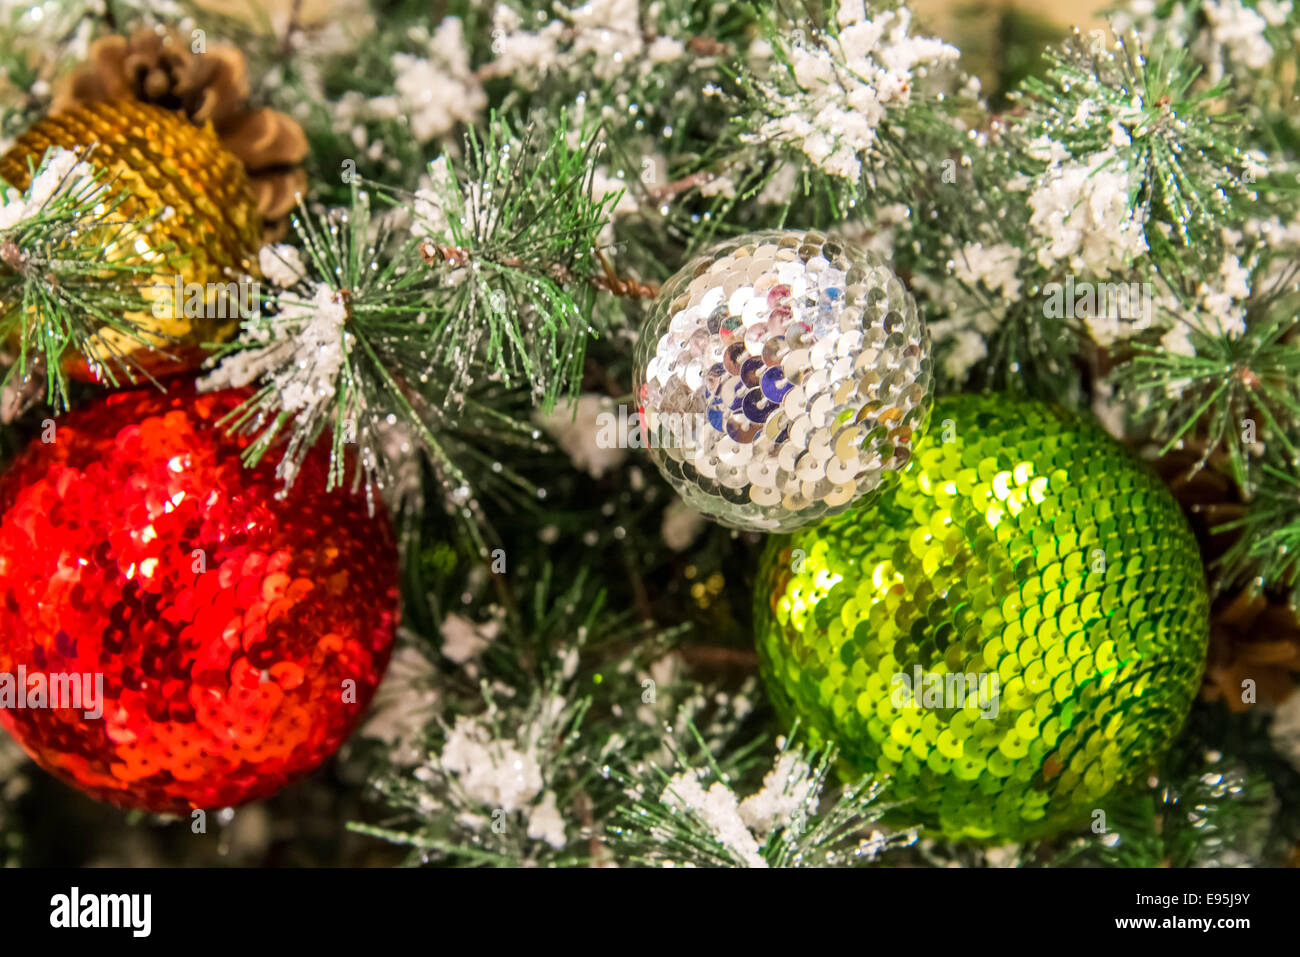 Christmas Decorations Ornaments Gold Silver Green Red Stock Photo Alamy